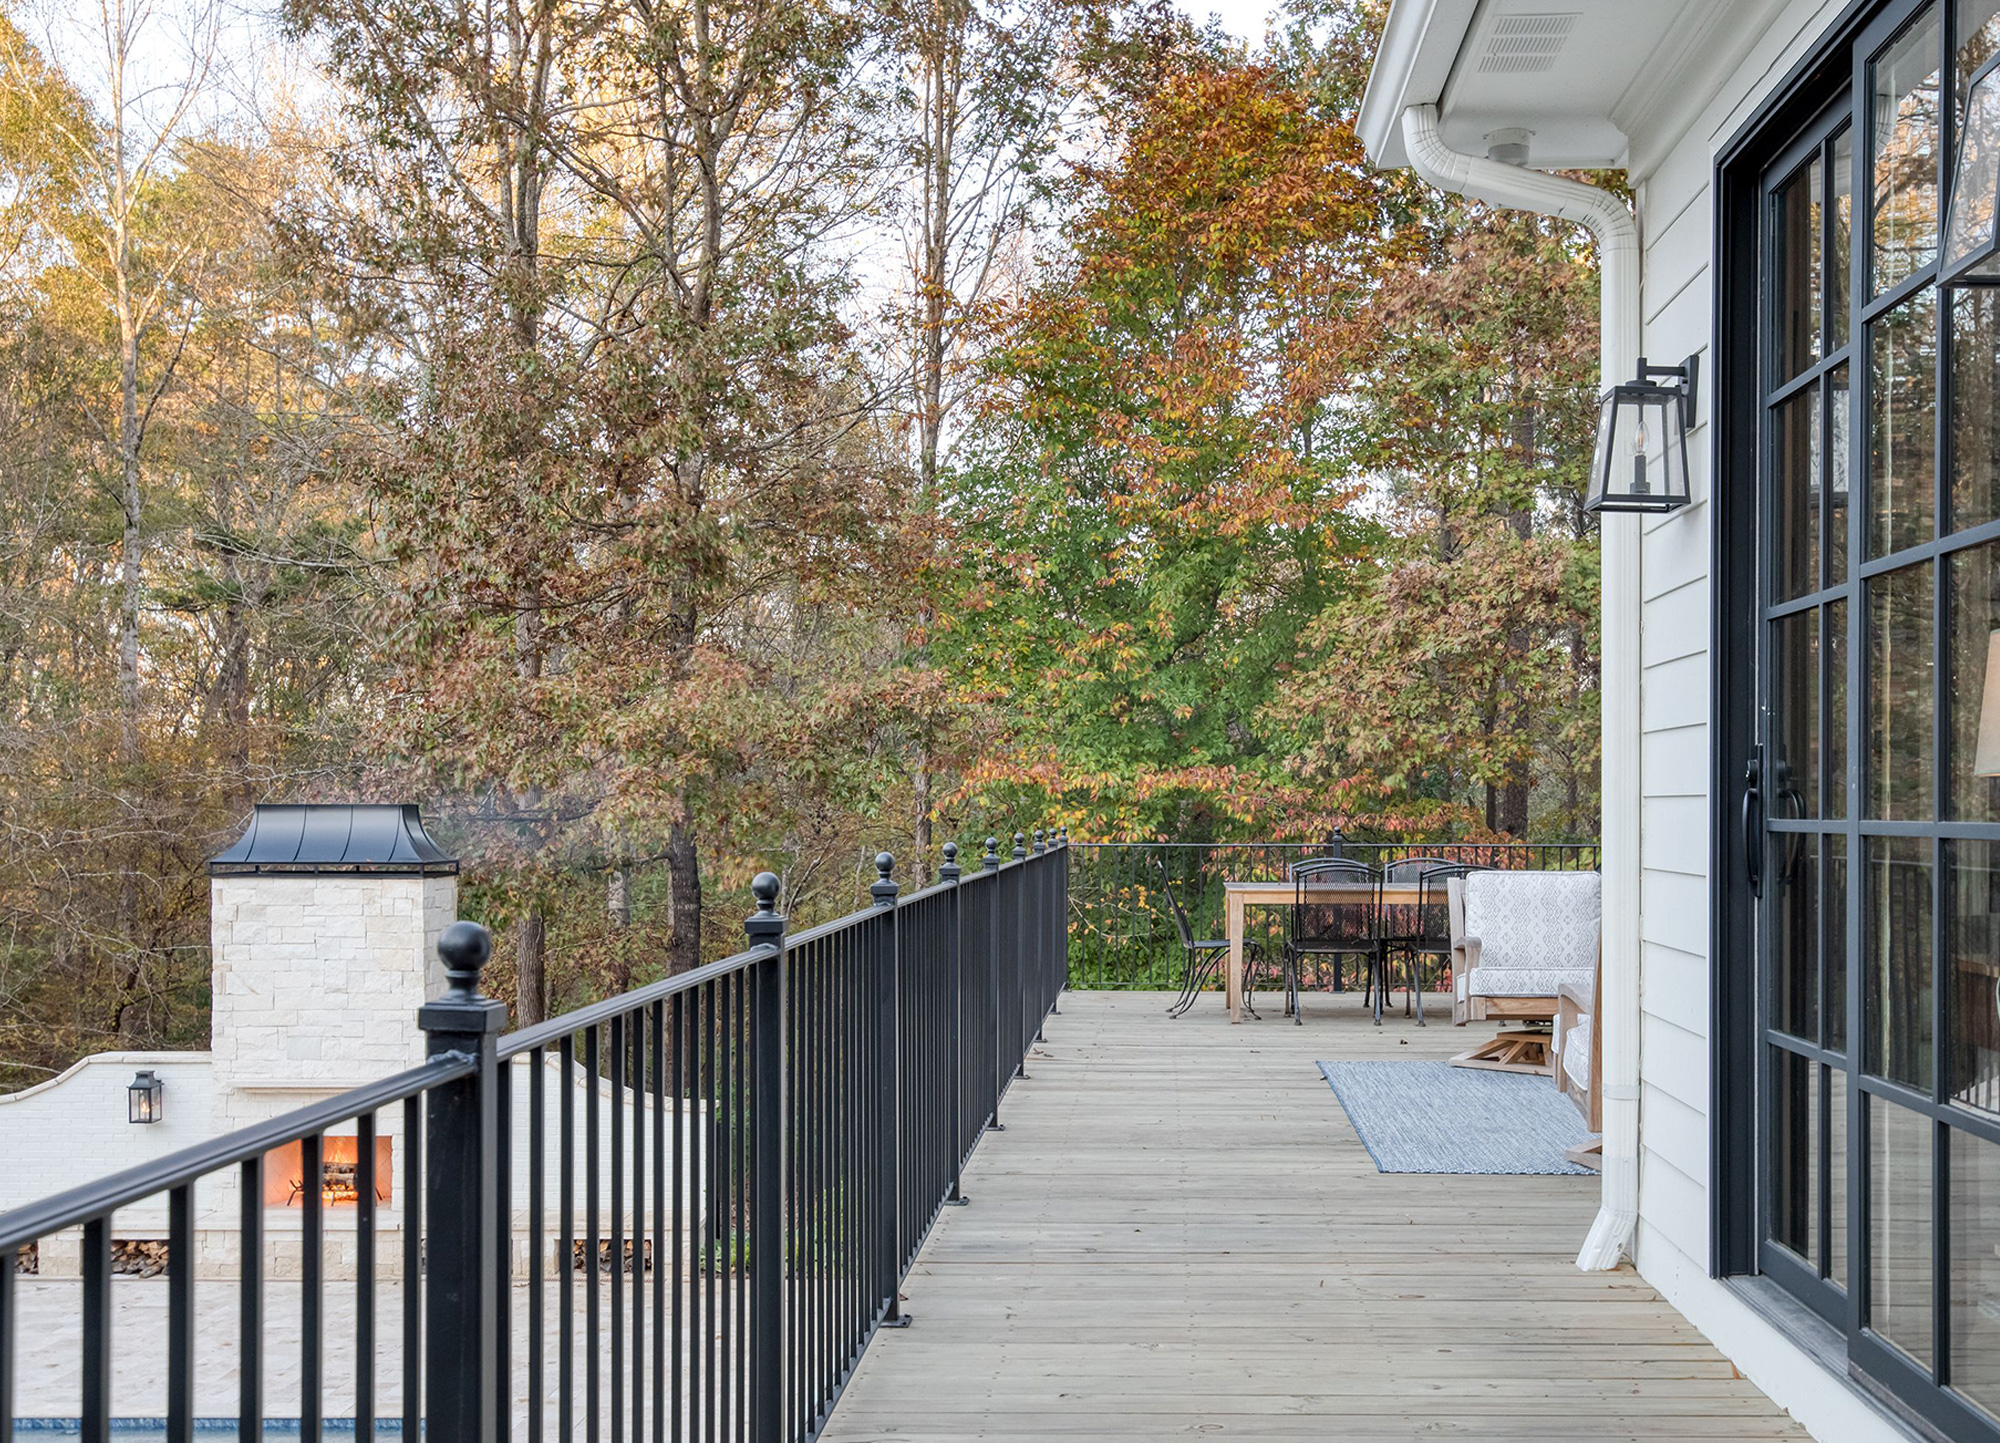 New Viewing Deck with Iron Railings